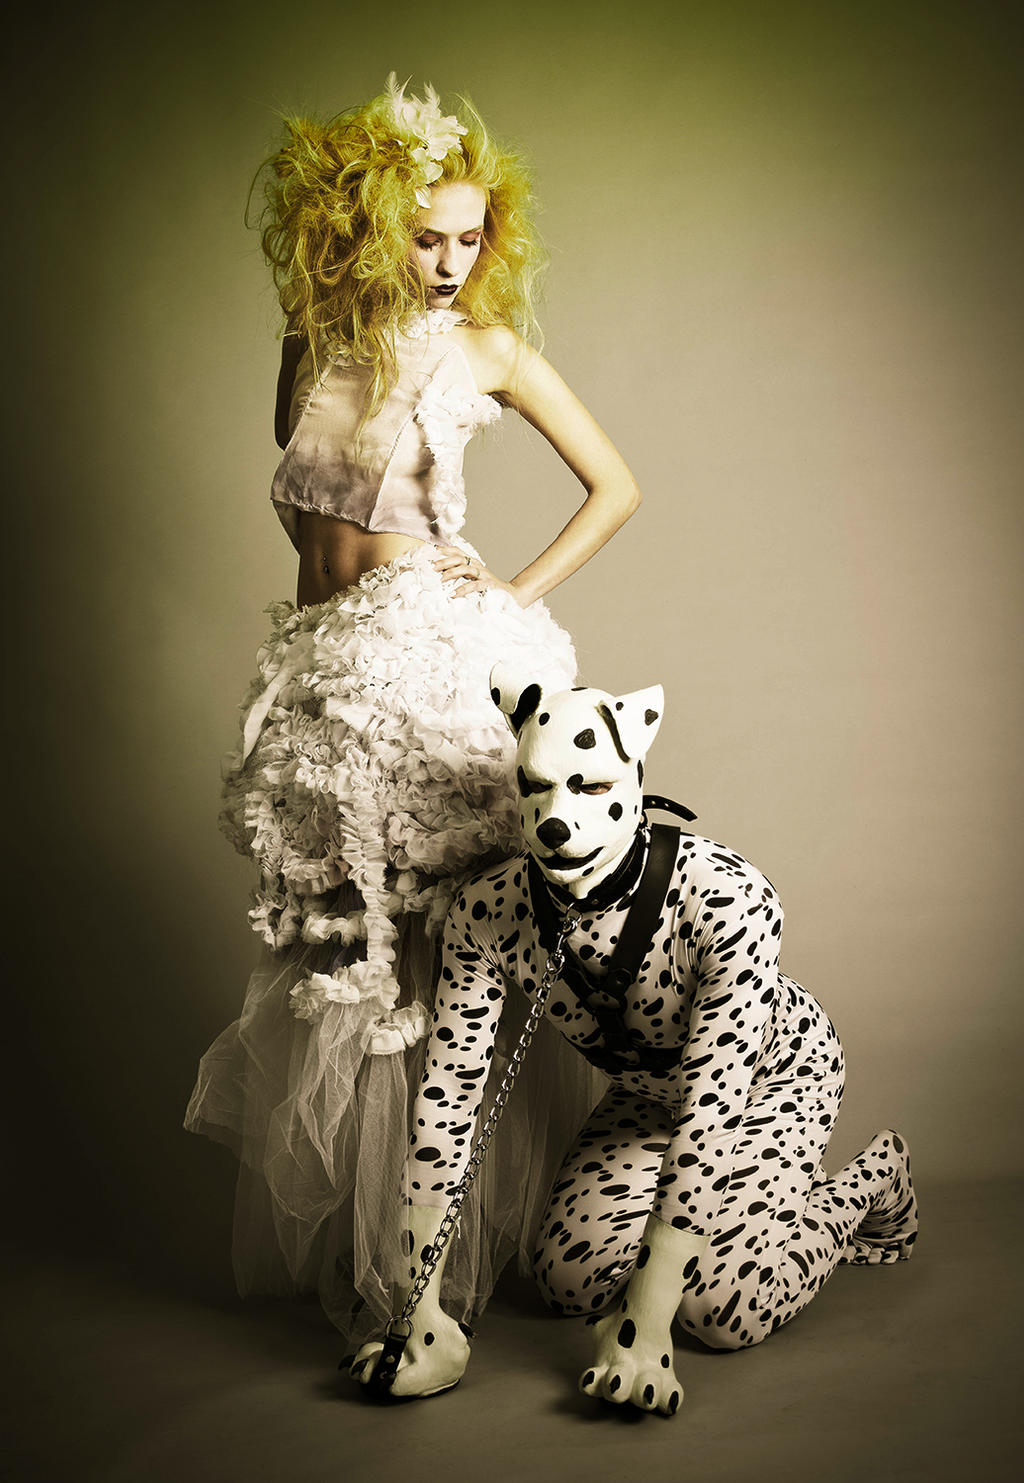 Fantasy Fashion Photography Haunted Fantasy Fashion